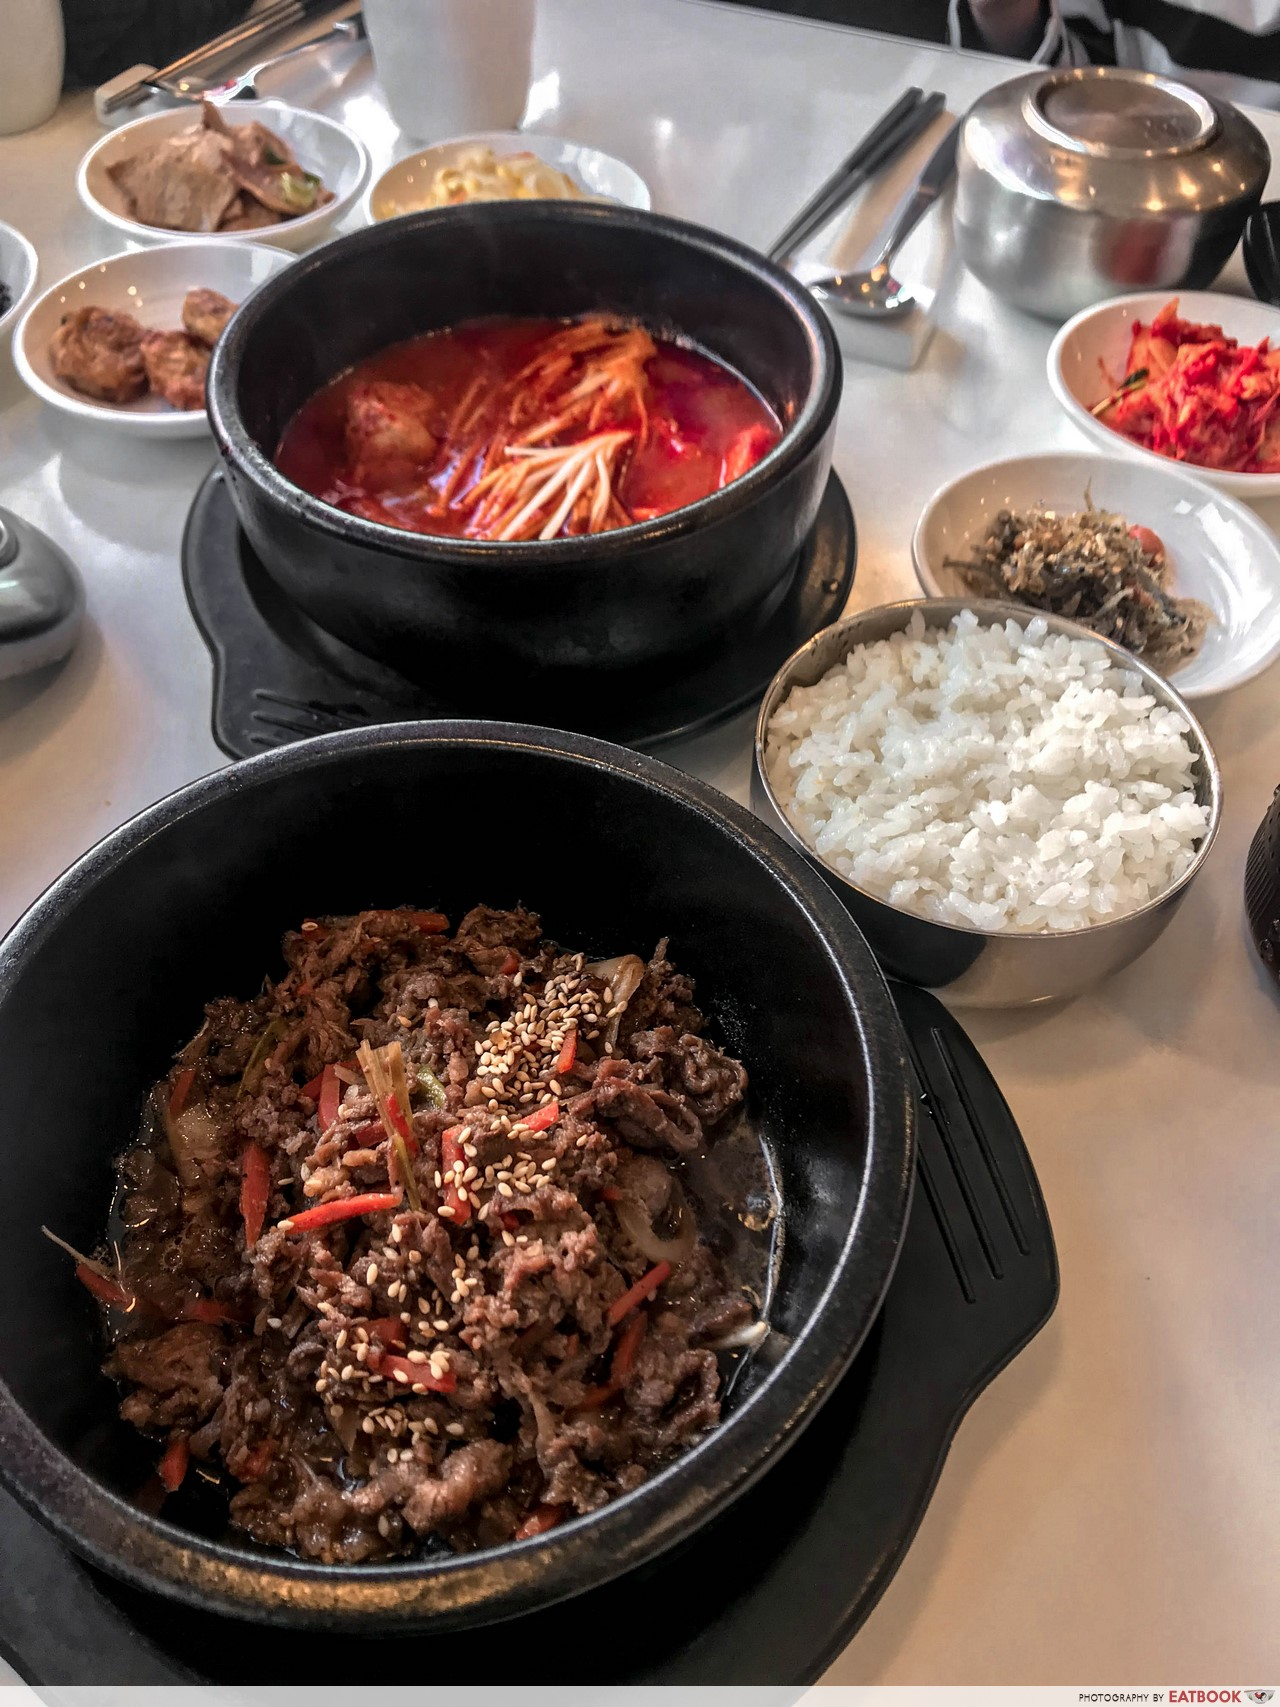 Halal Food places In Seoul - Makan Halal Food Restaurant